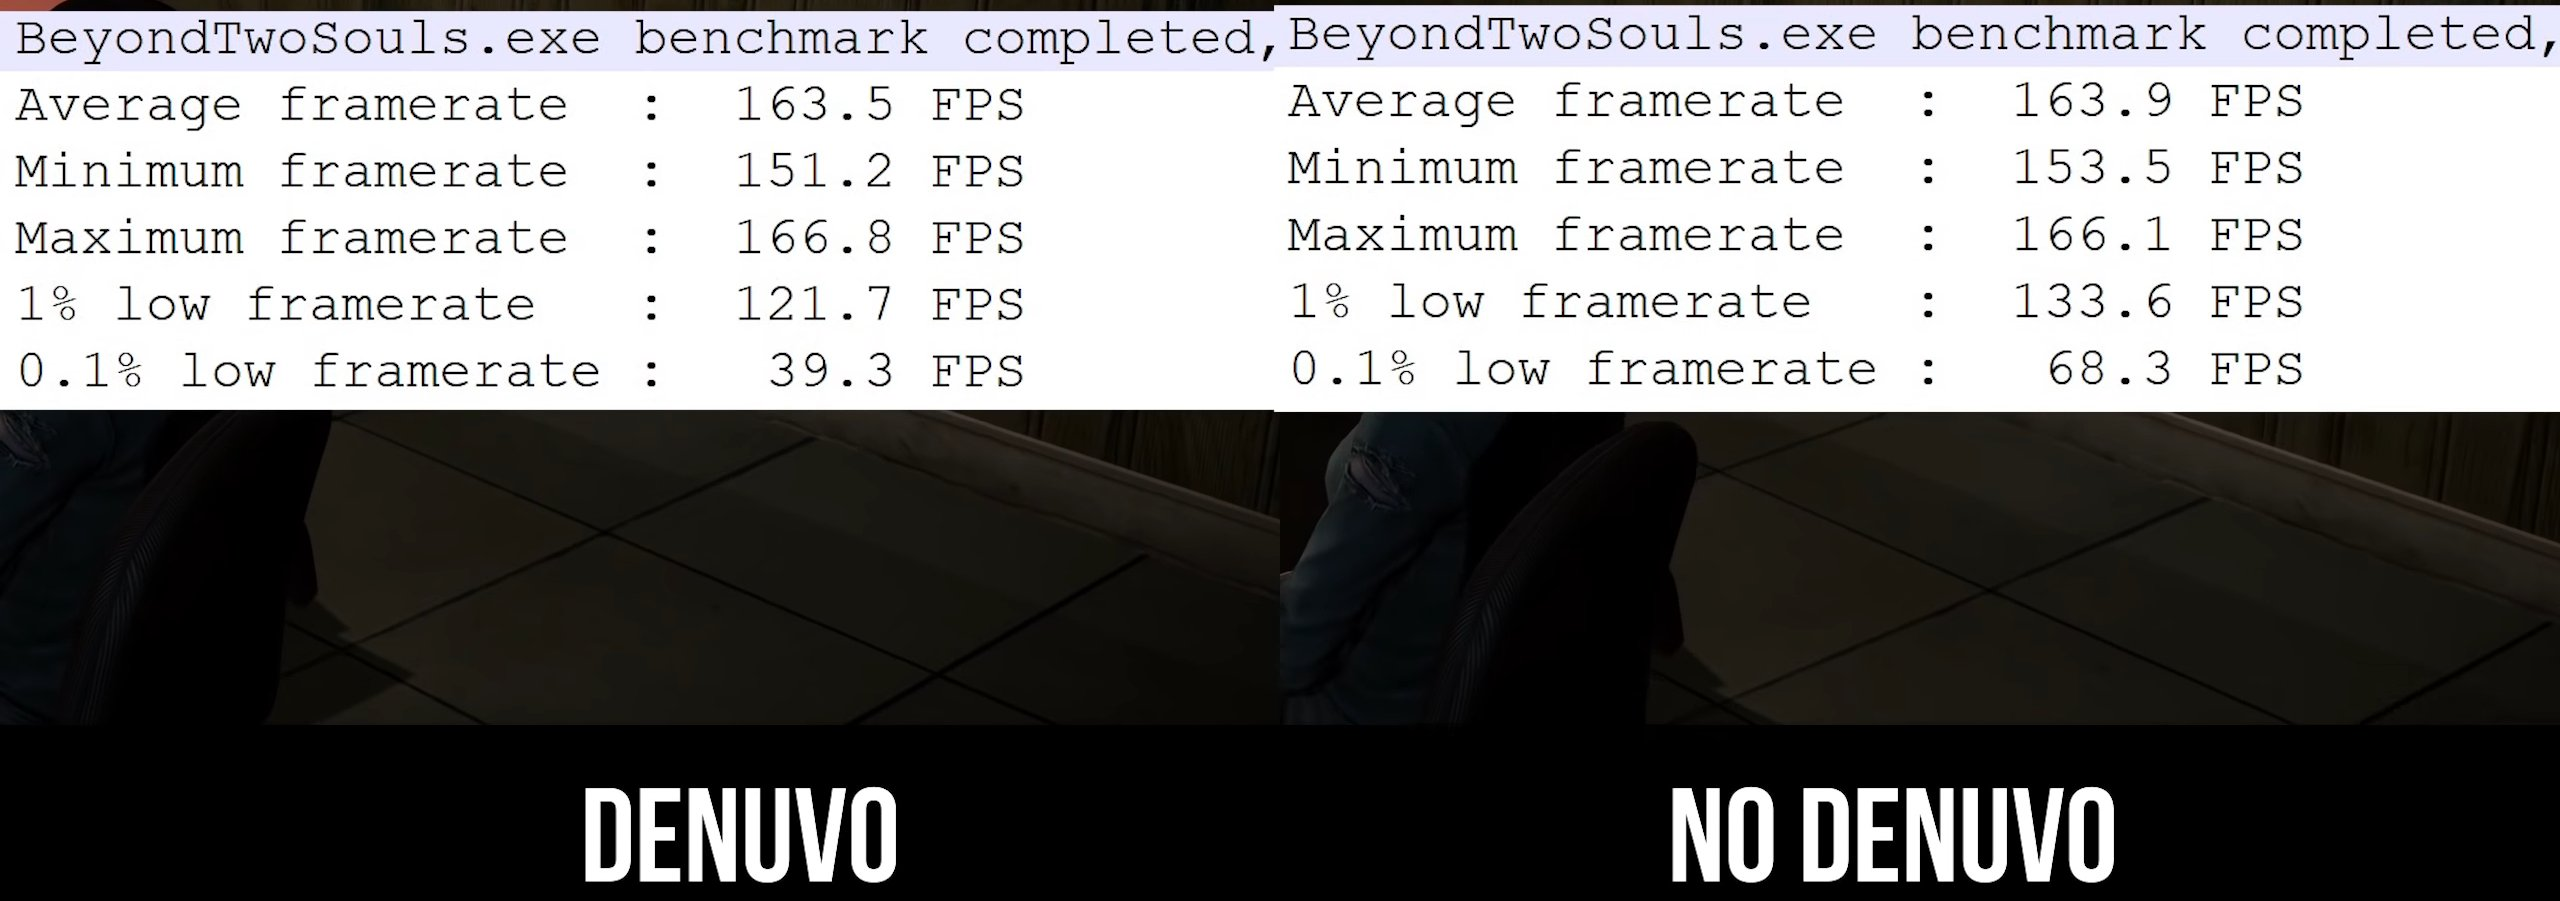 125436-Did%20Denuvo%20slow%20performance